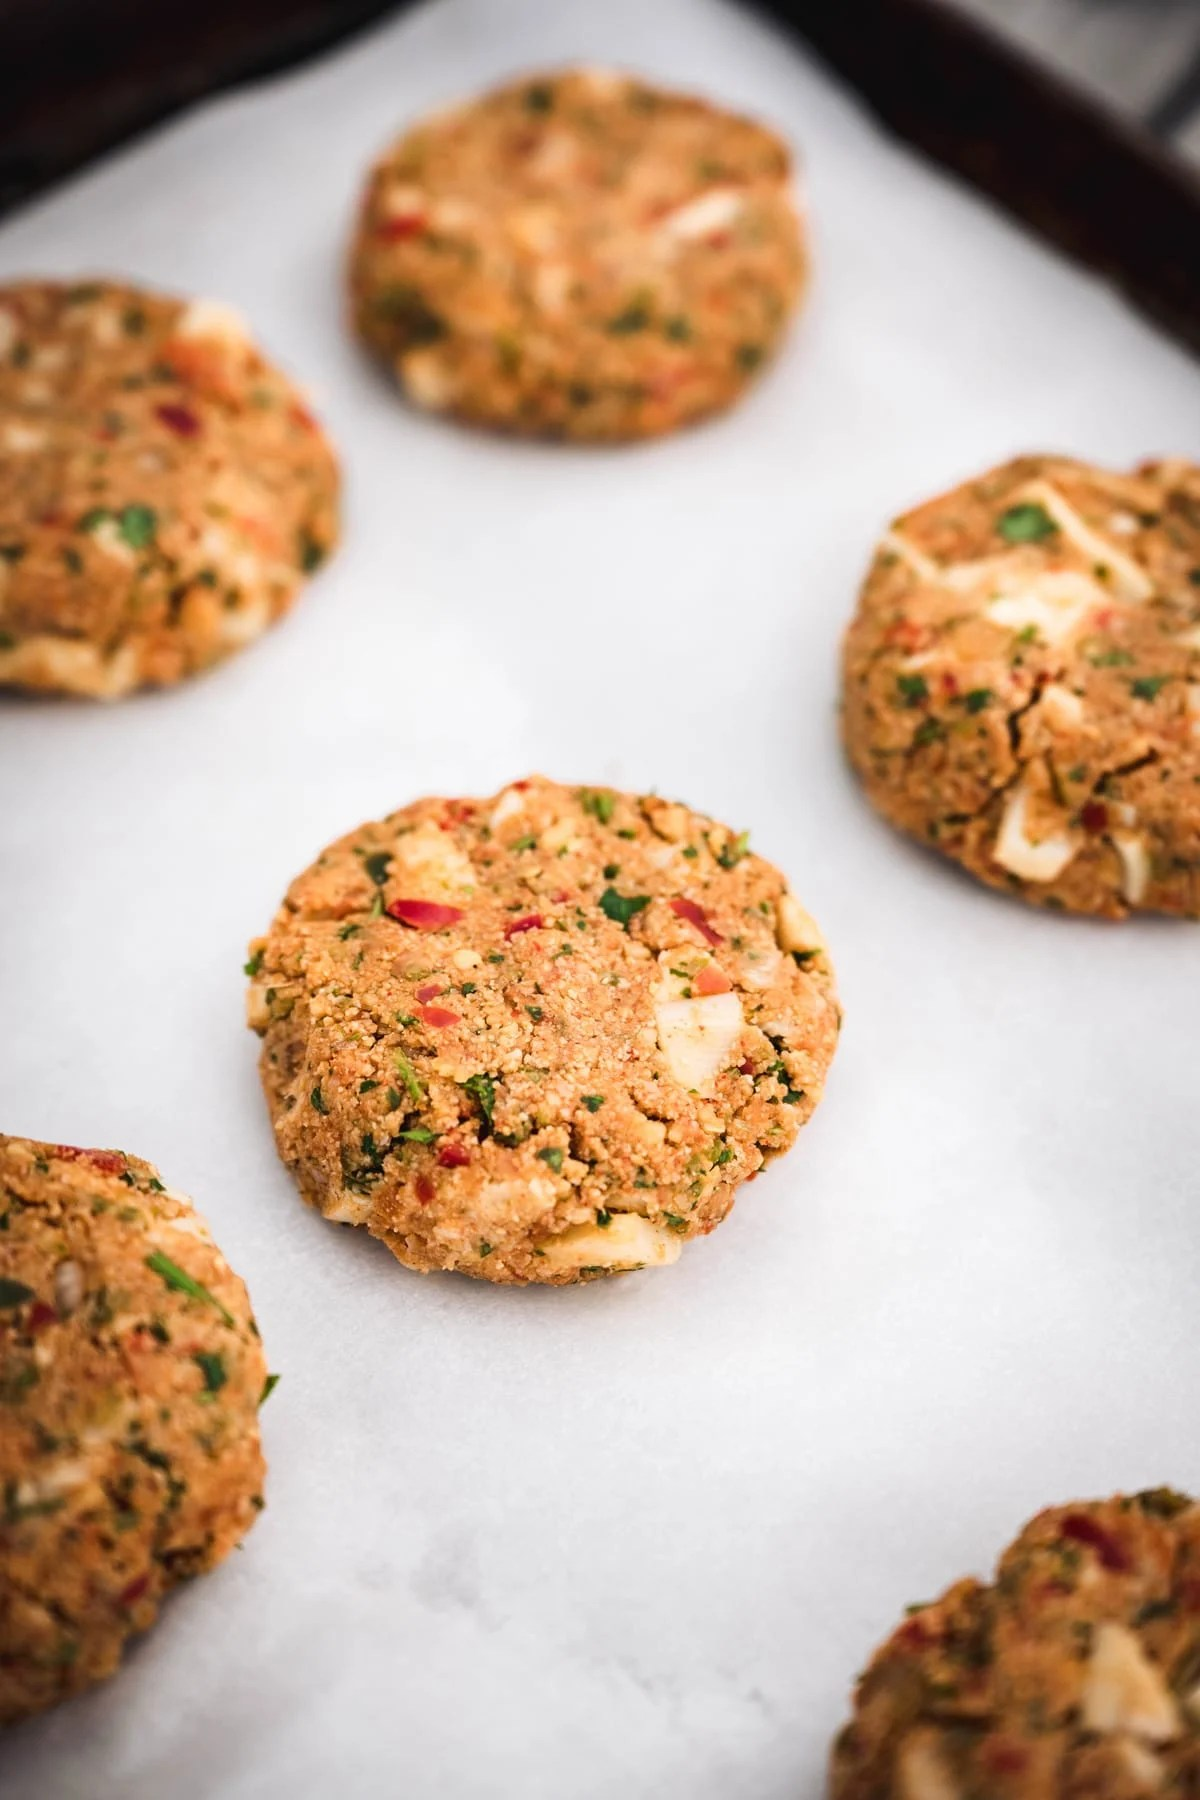 45 degree angle of vegan crab cakes before they're cooked on a baking sheet